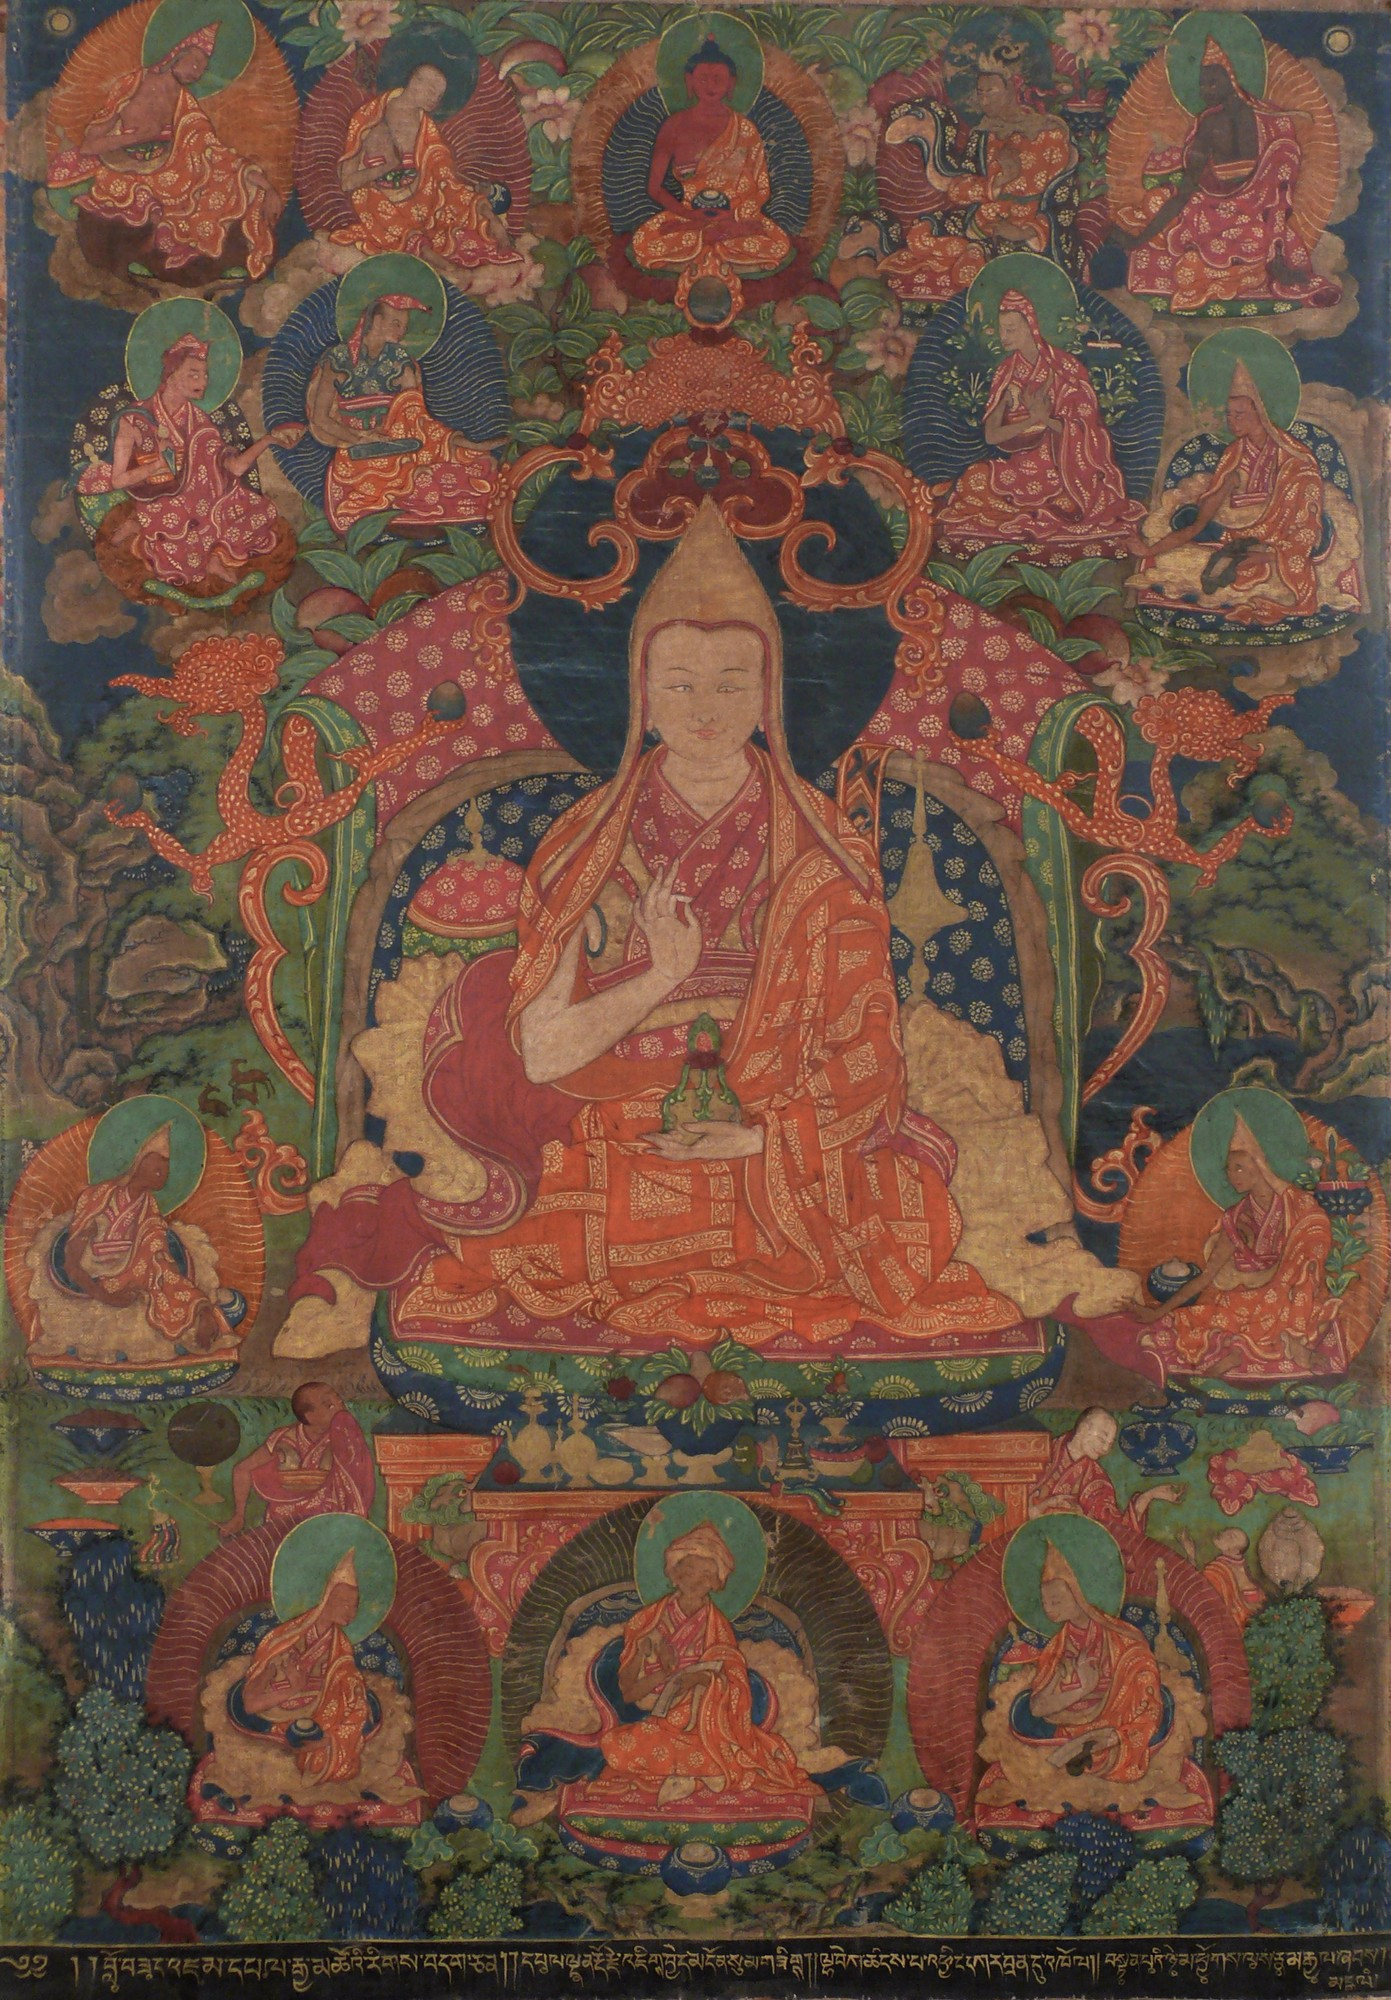 The 7th Panchen Lama Tenpai Nyima, a statesman and attained practitioner who included Chinnamasta's practice in his completion of sadhanas known as the Rinchen Lhantab. Click to enlarge.